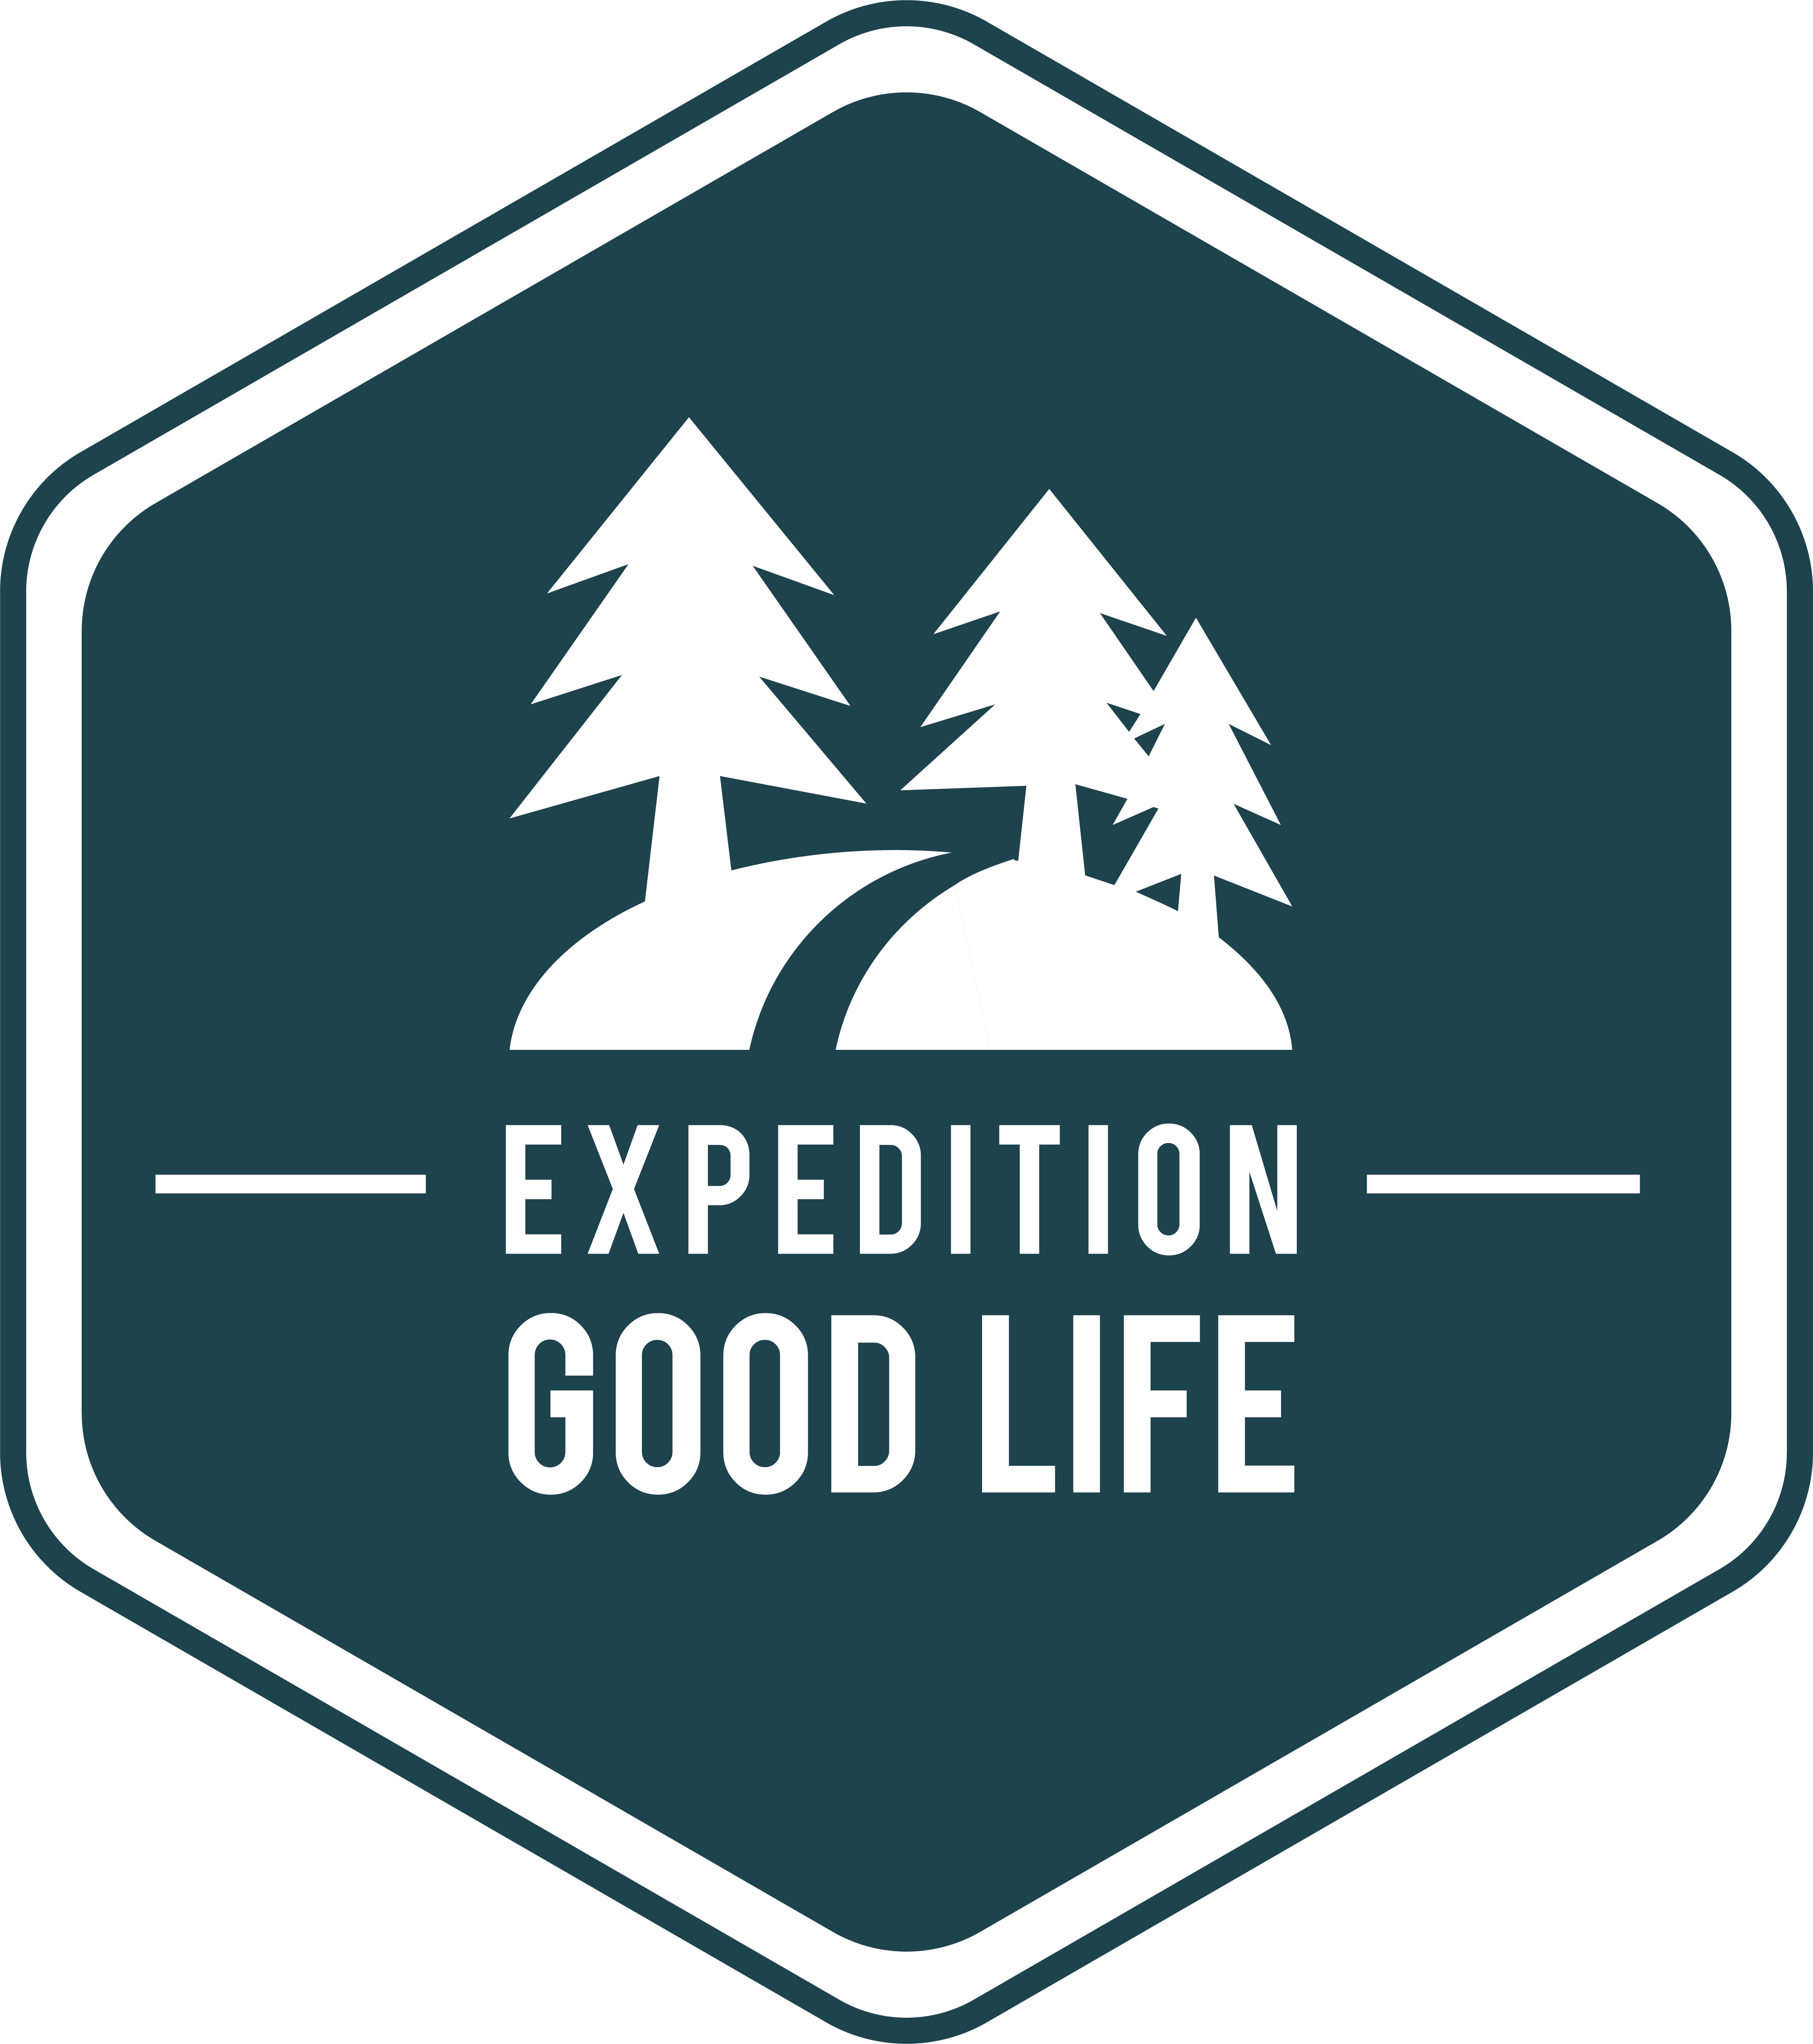 Expedition good life